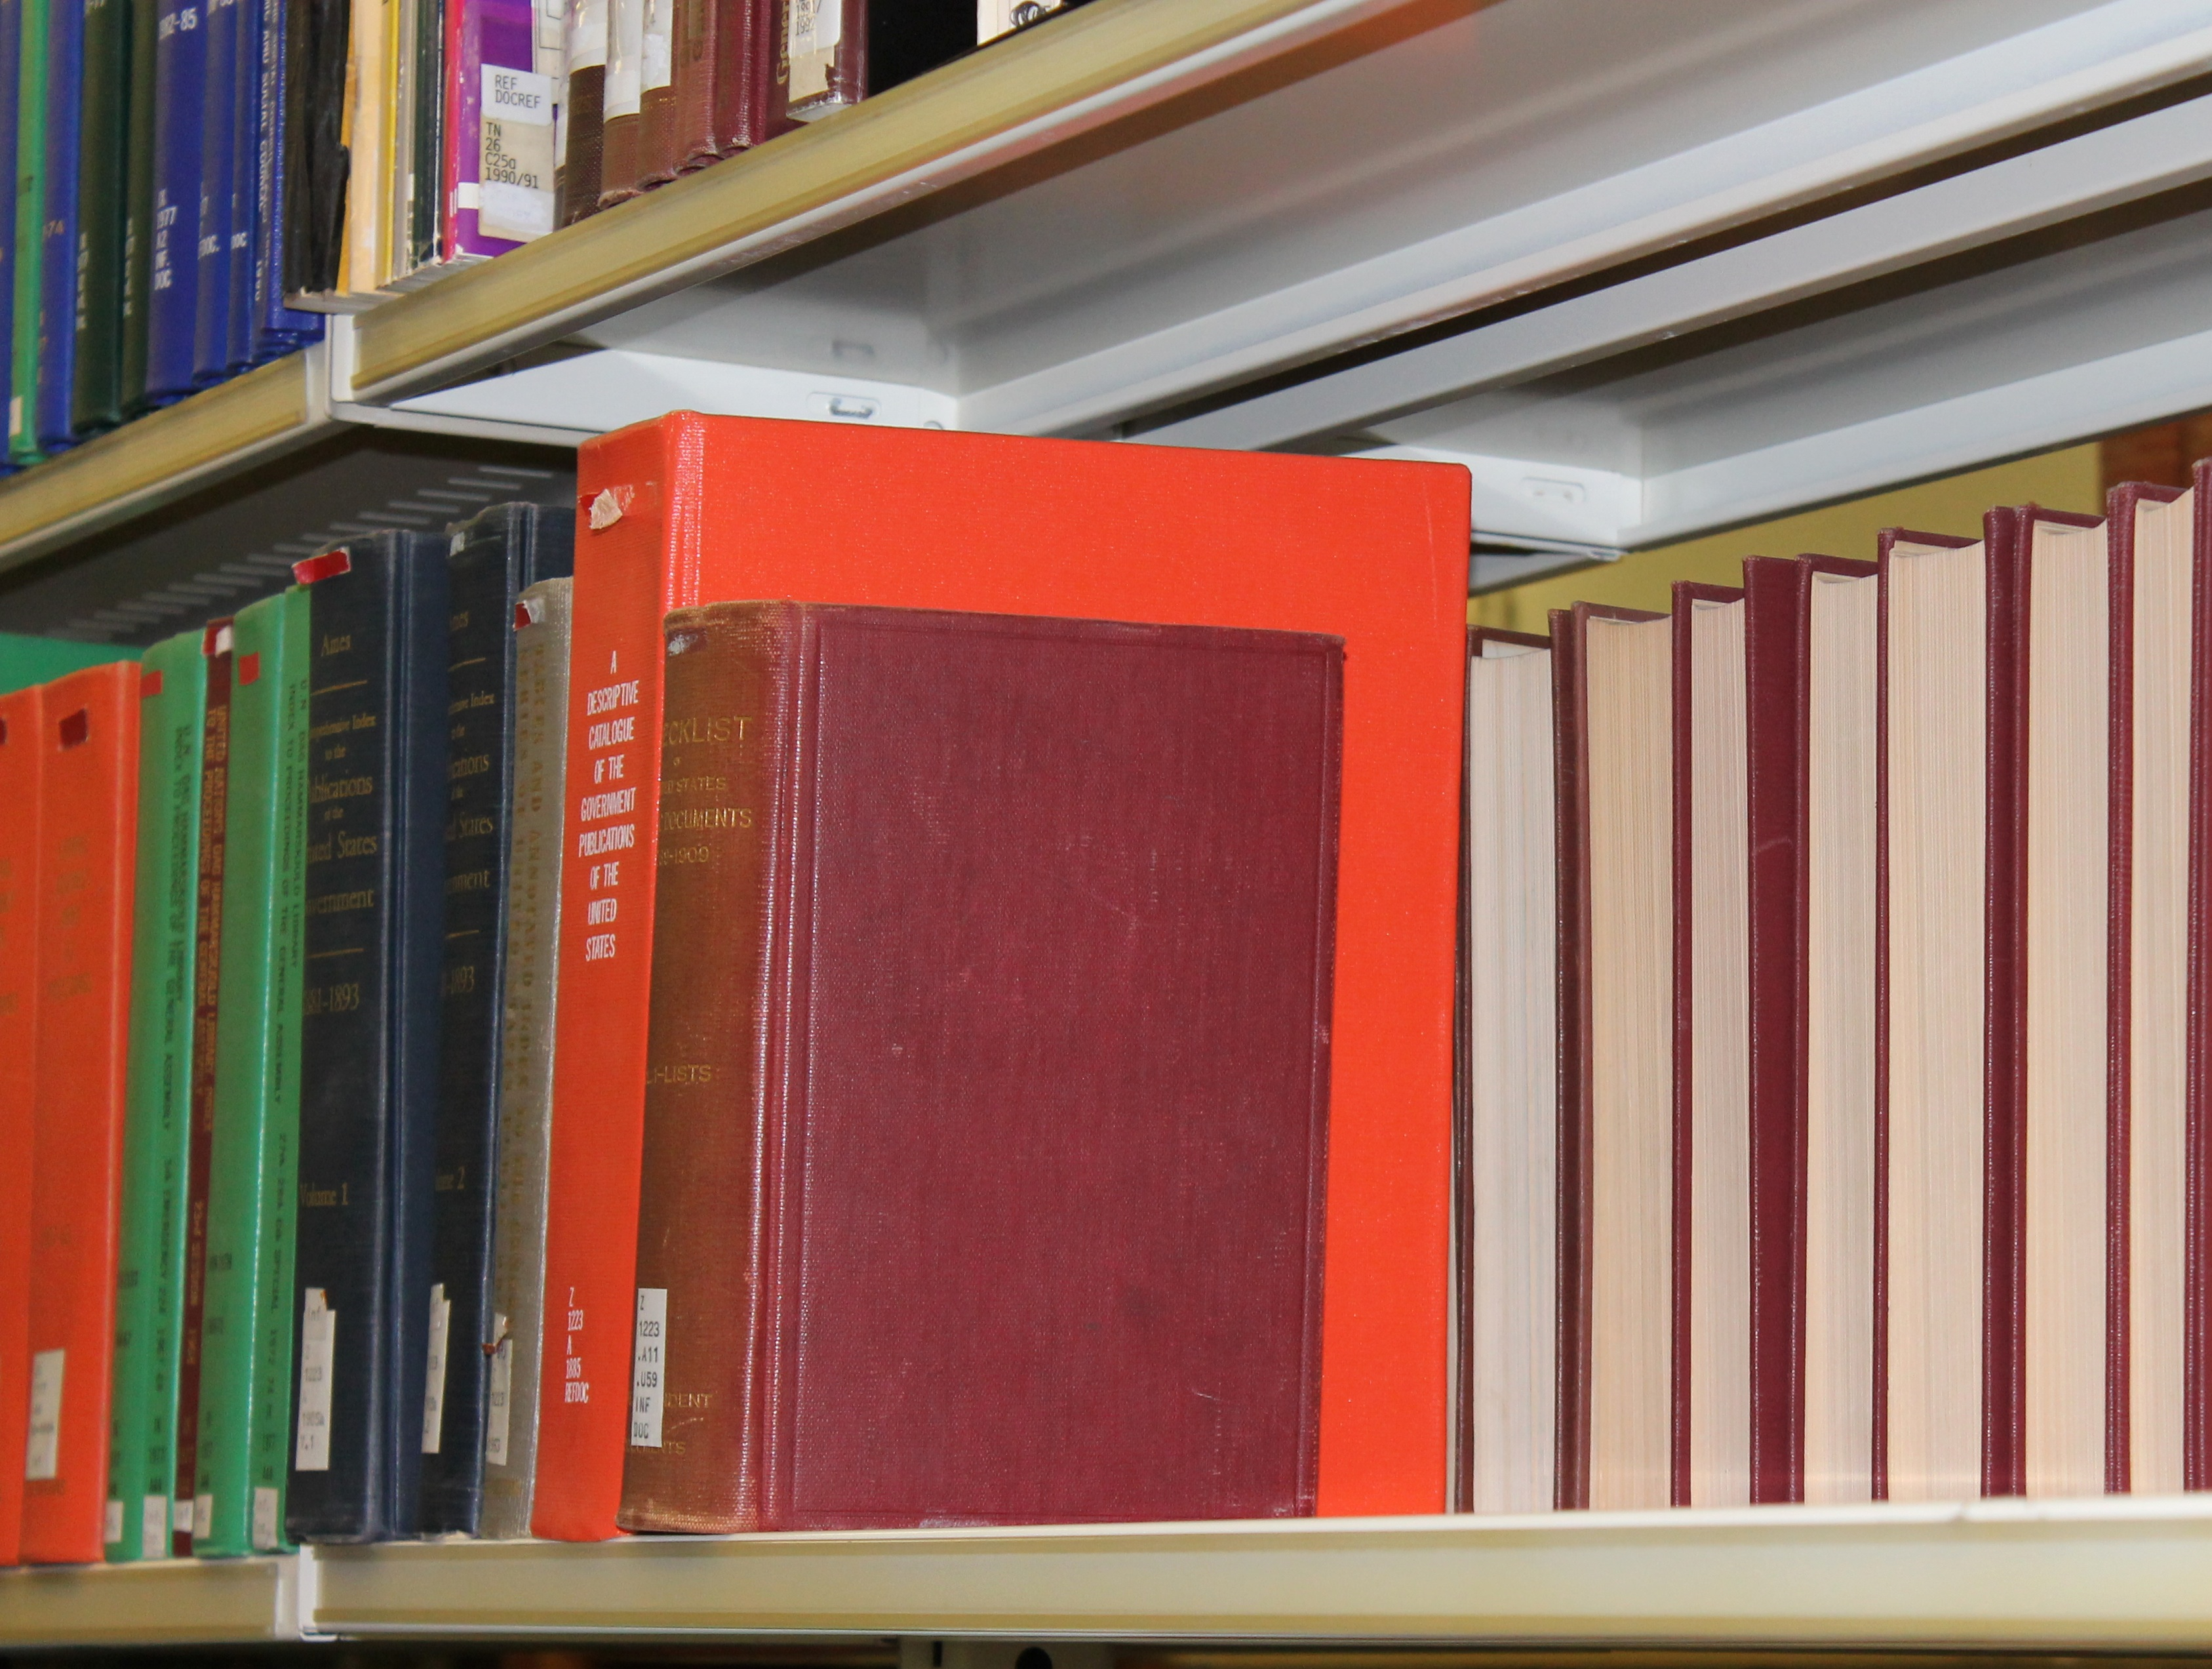 The Killam Library cannot afford any new acquisitions (photo by Asrar UlHaq)